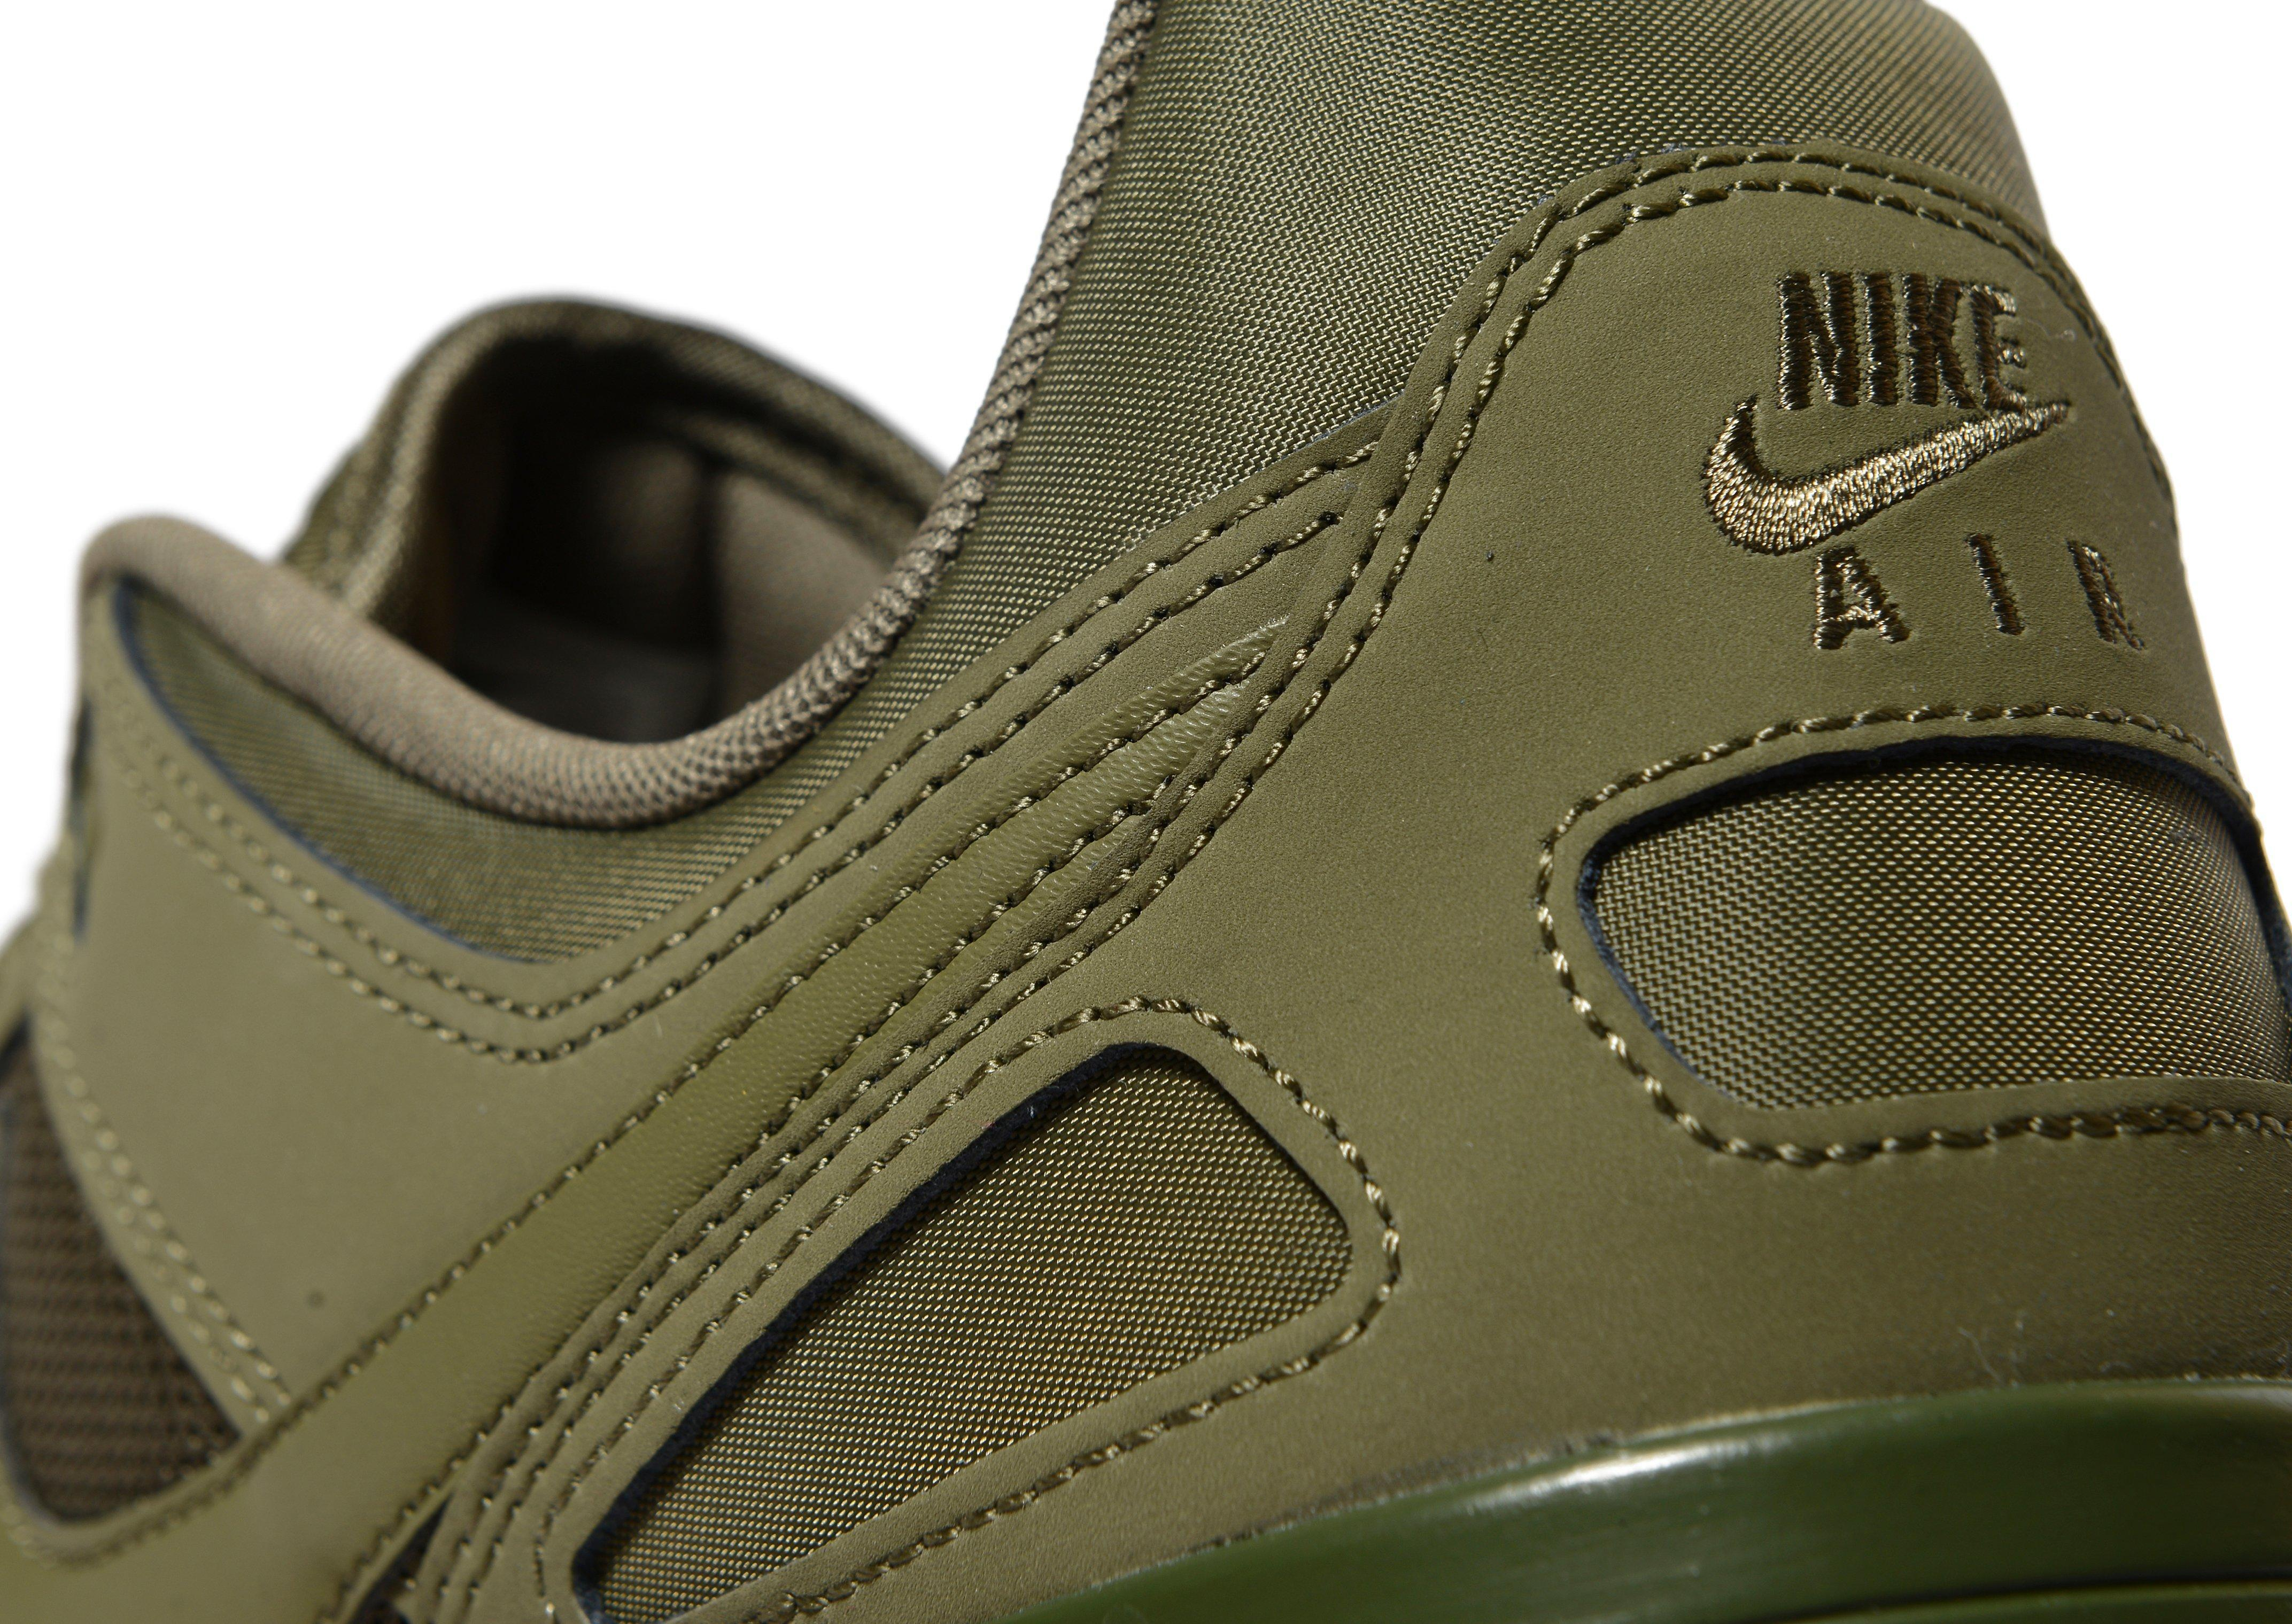 Nike Leather Pegasus 89 in Olive (Green